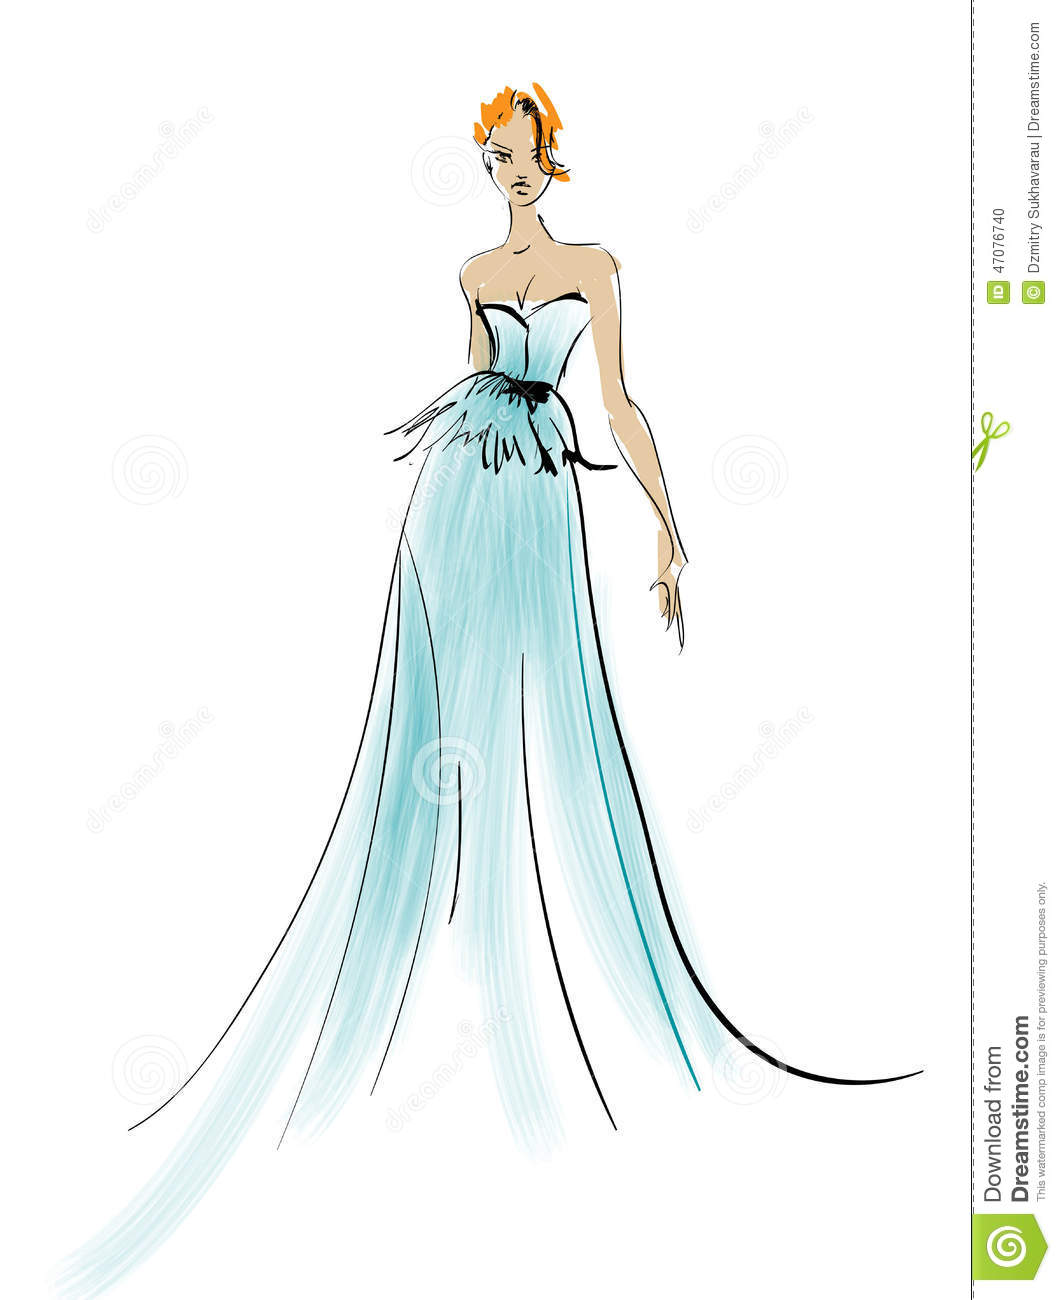 Sketch Fashion Girls Stock Vector Image 47076740